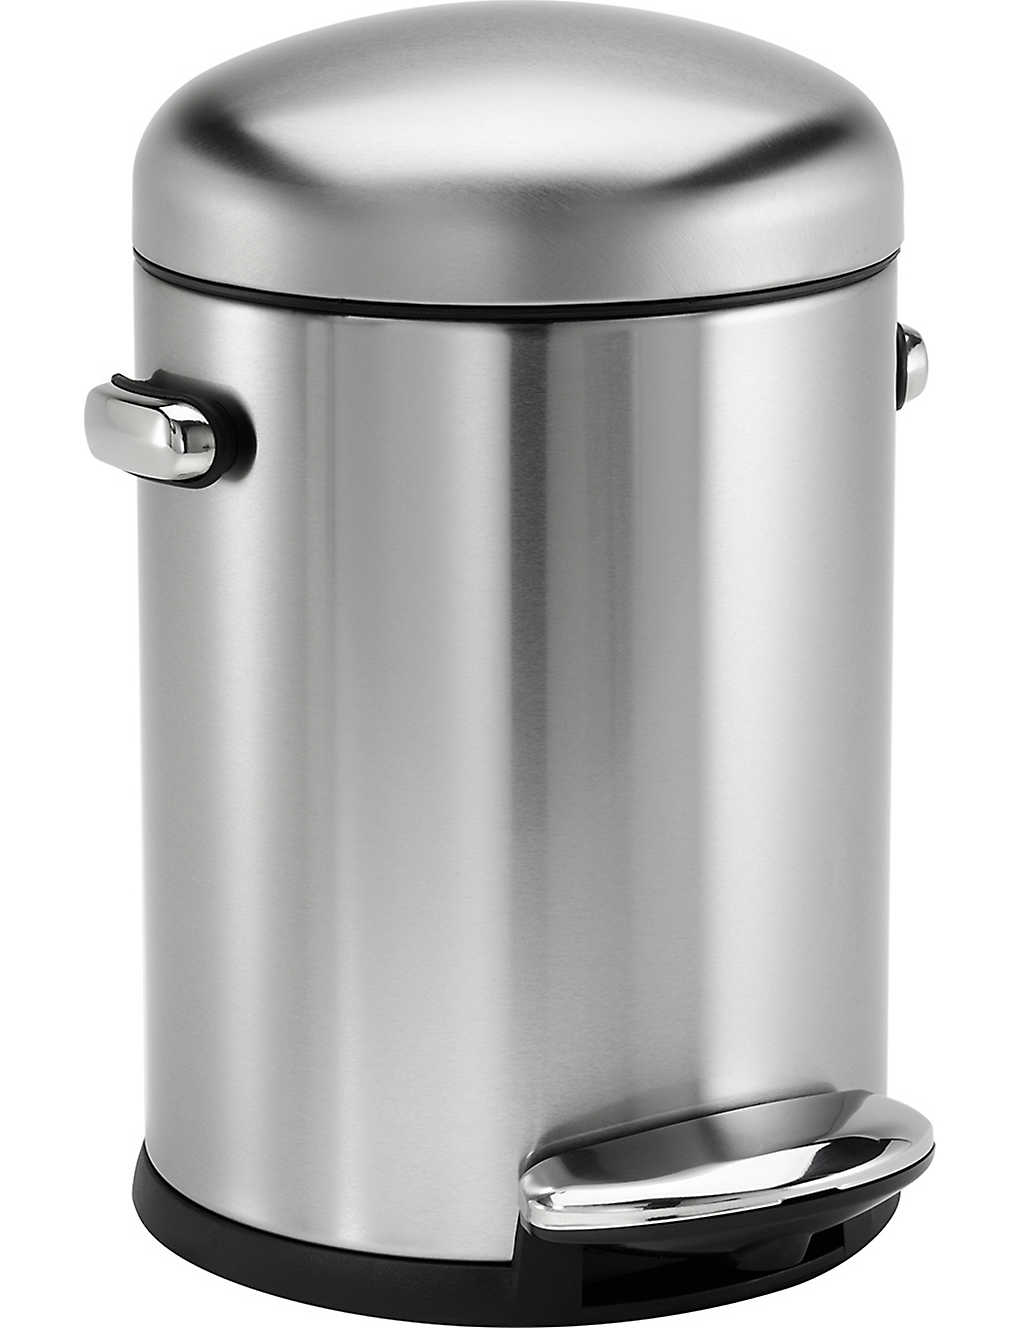 SIMPLE HUMAN: Retro stainless steel pedal bin 4.5L